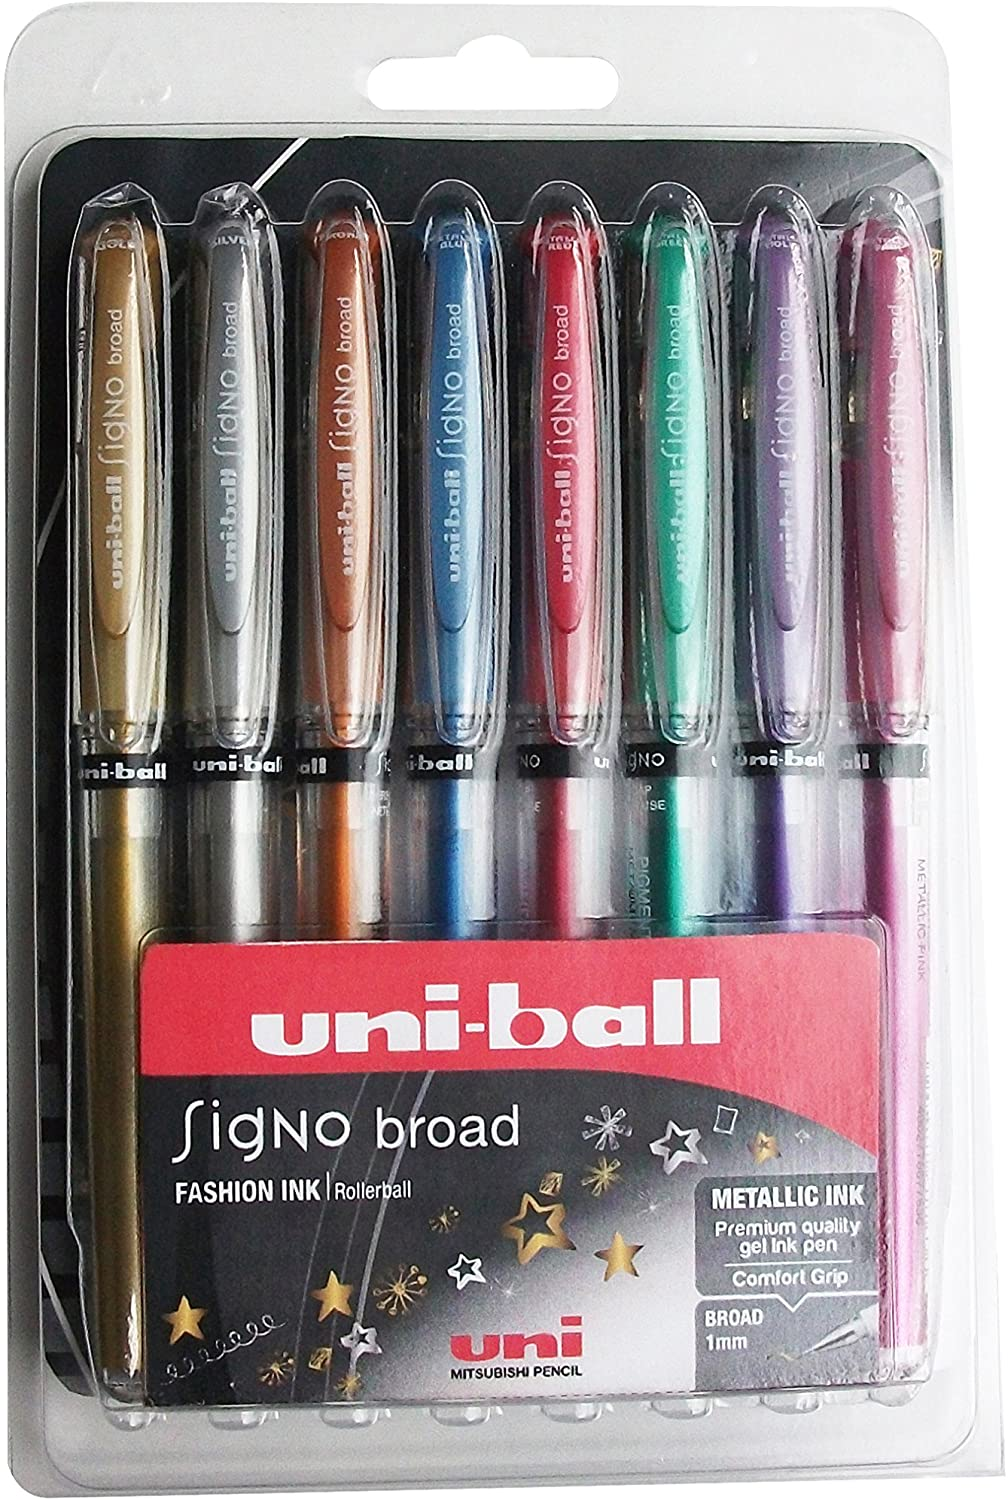 Uni-ball Signo Um-153 Broad Metallic Rollerball Pen - Assorted Colour, Pack Of 8